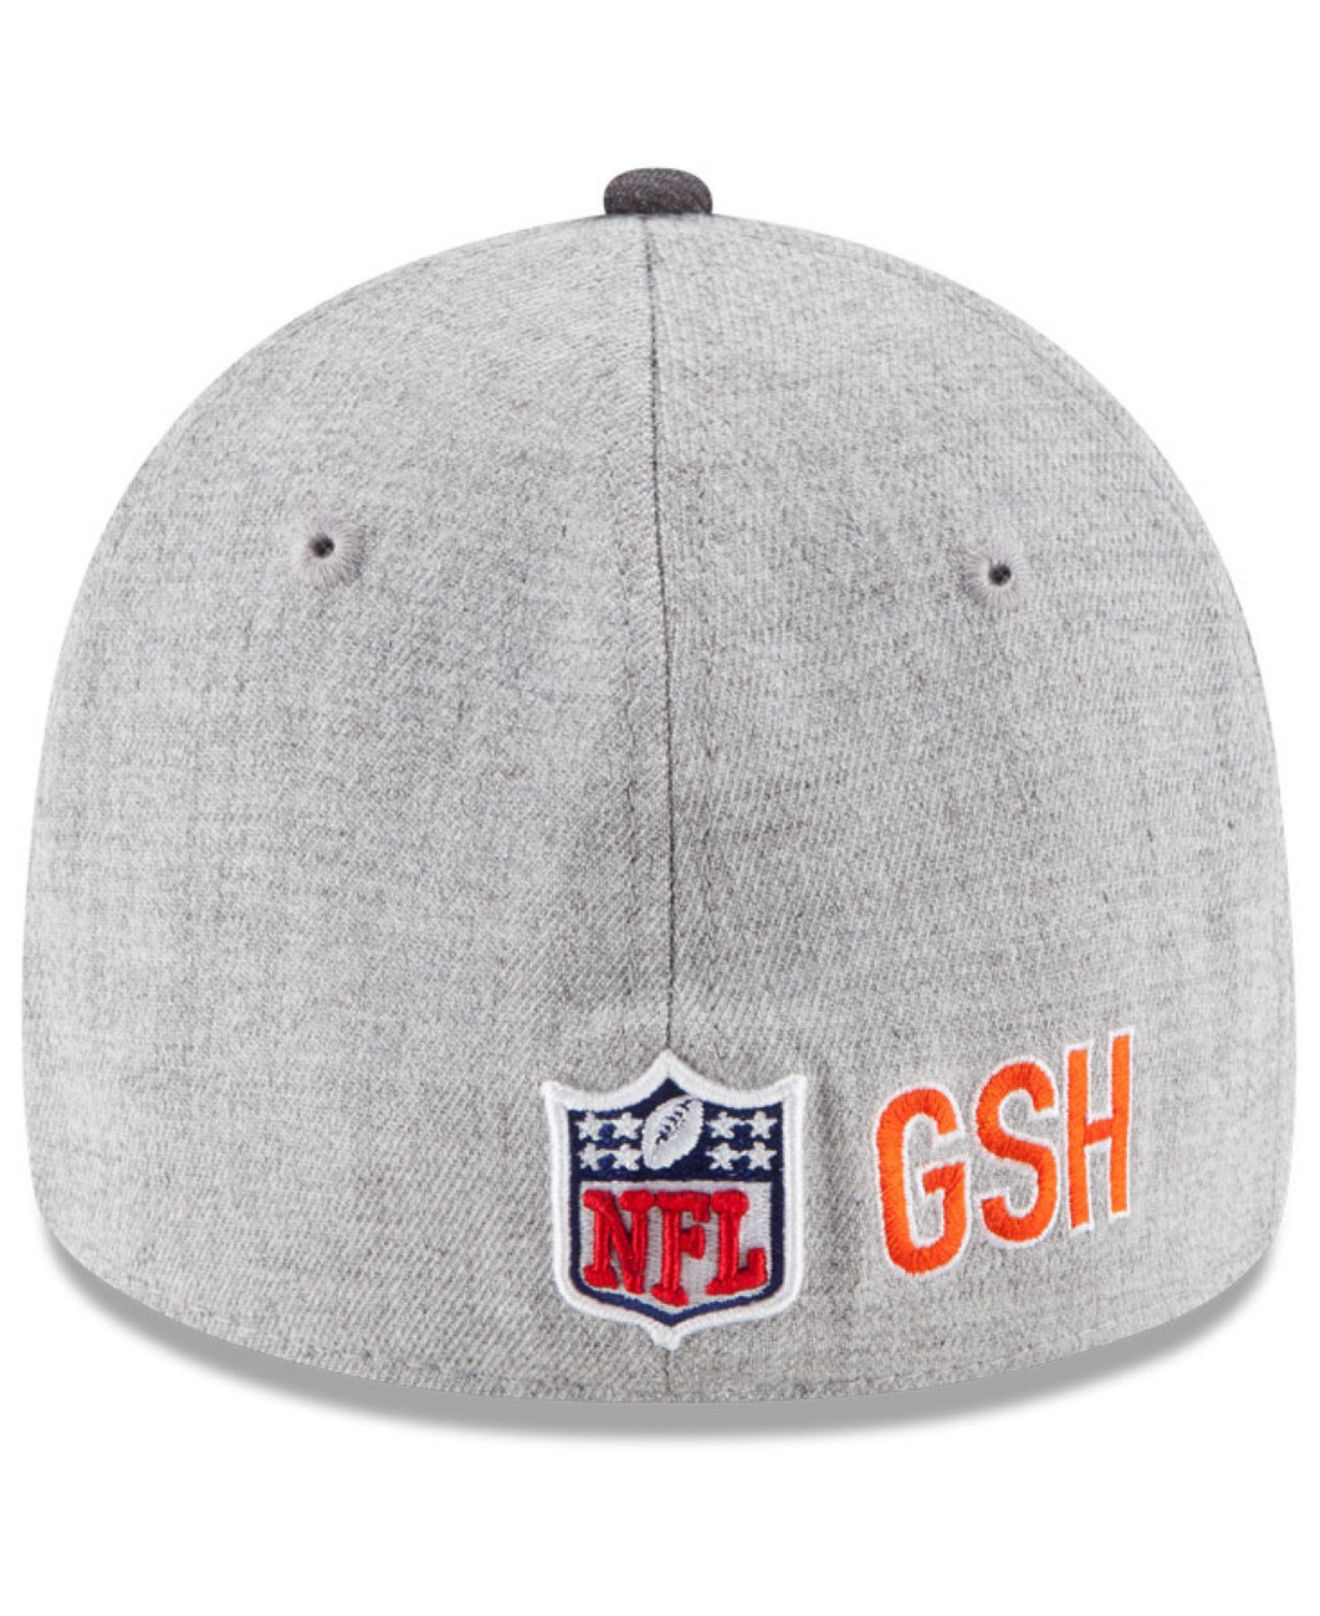 info for 82716 557cc Lyst - Ktz Chicago Bears Breast Cancer Awareness 39thirty Cap in Gray